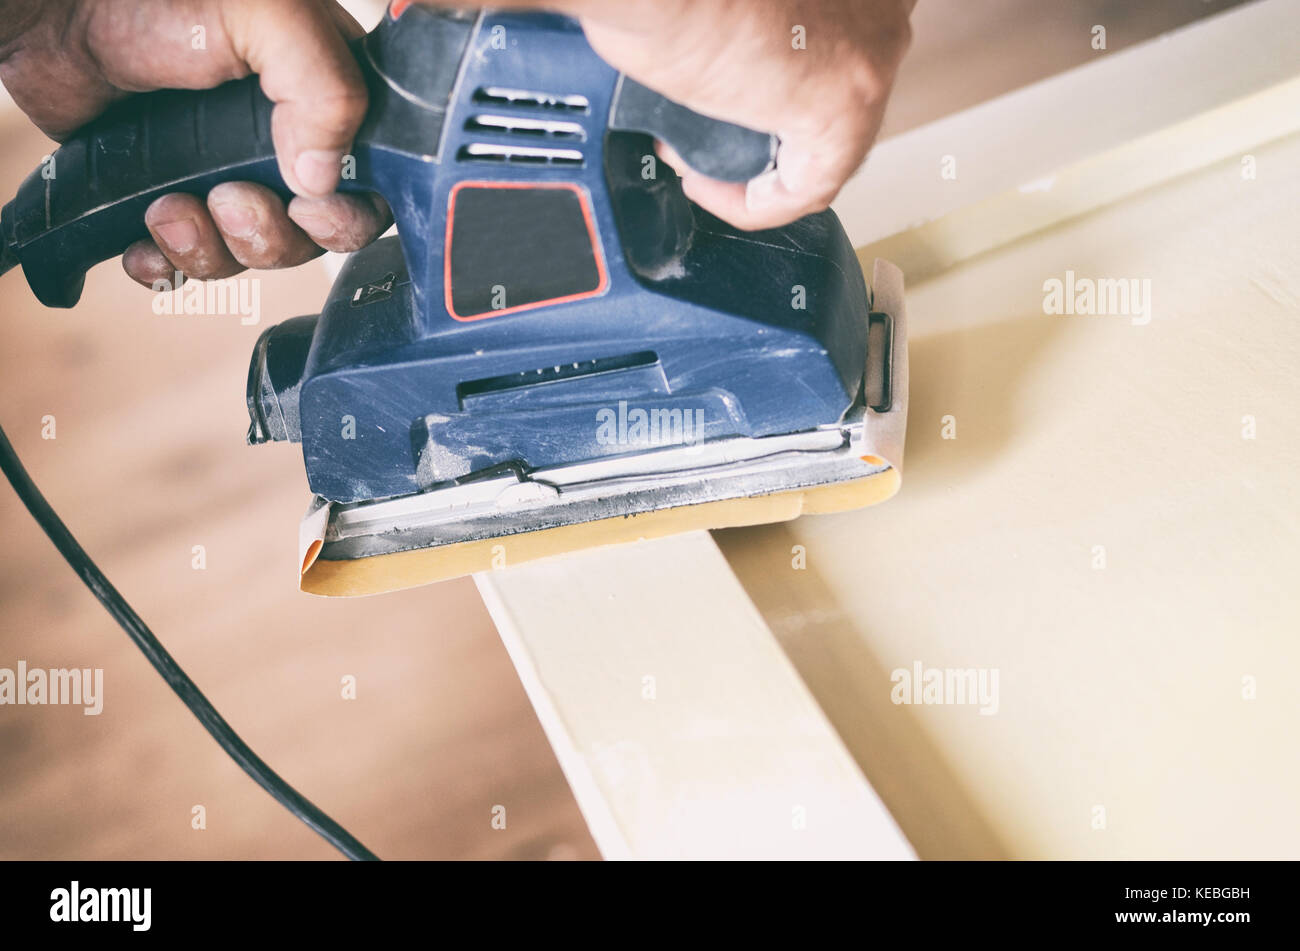 Sanding and preparing old doors with cracked paint for a new lick of paint, Smooth sanding or paint removal concept. - Stock Image